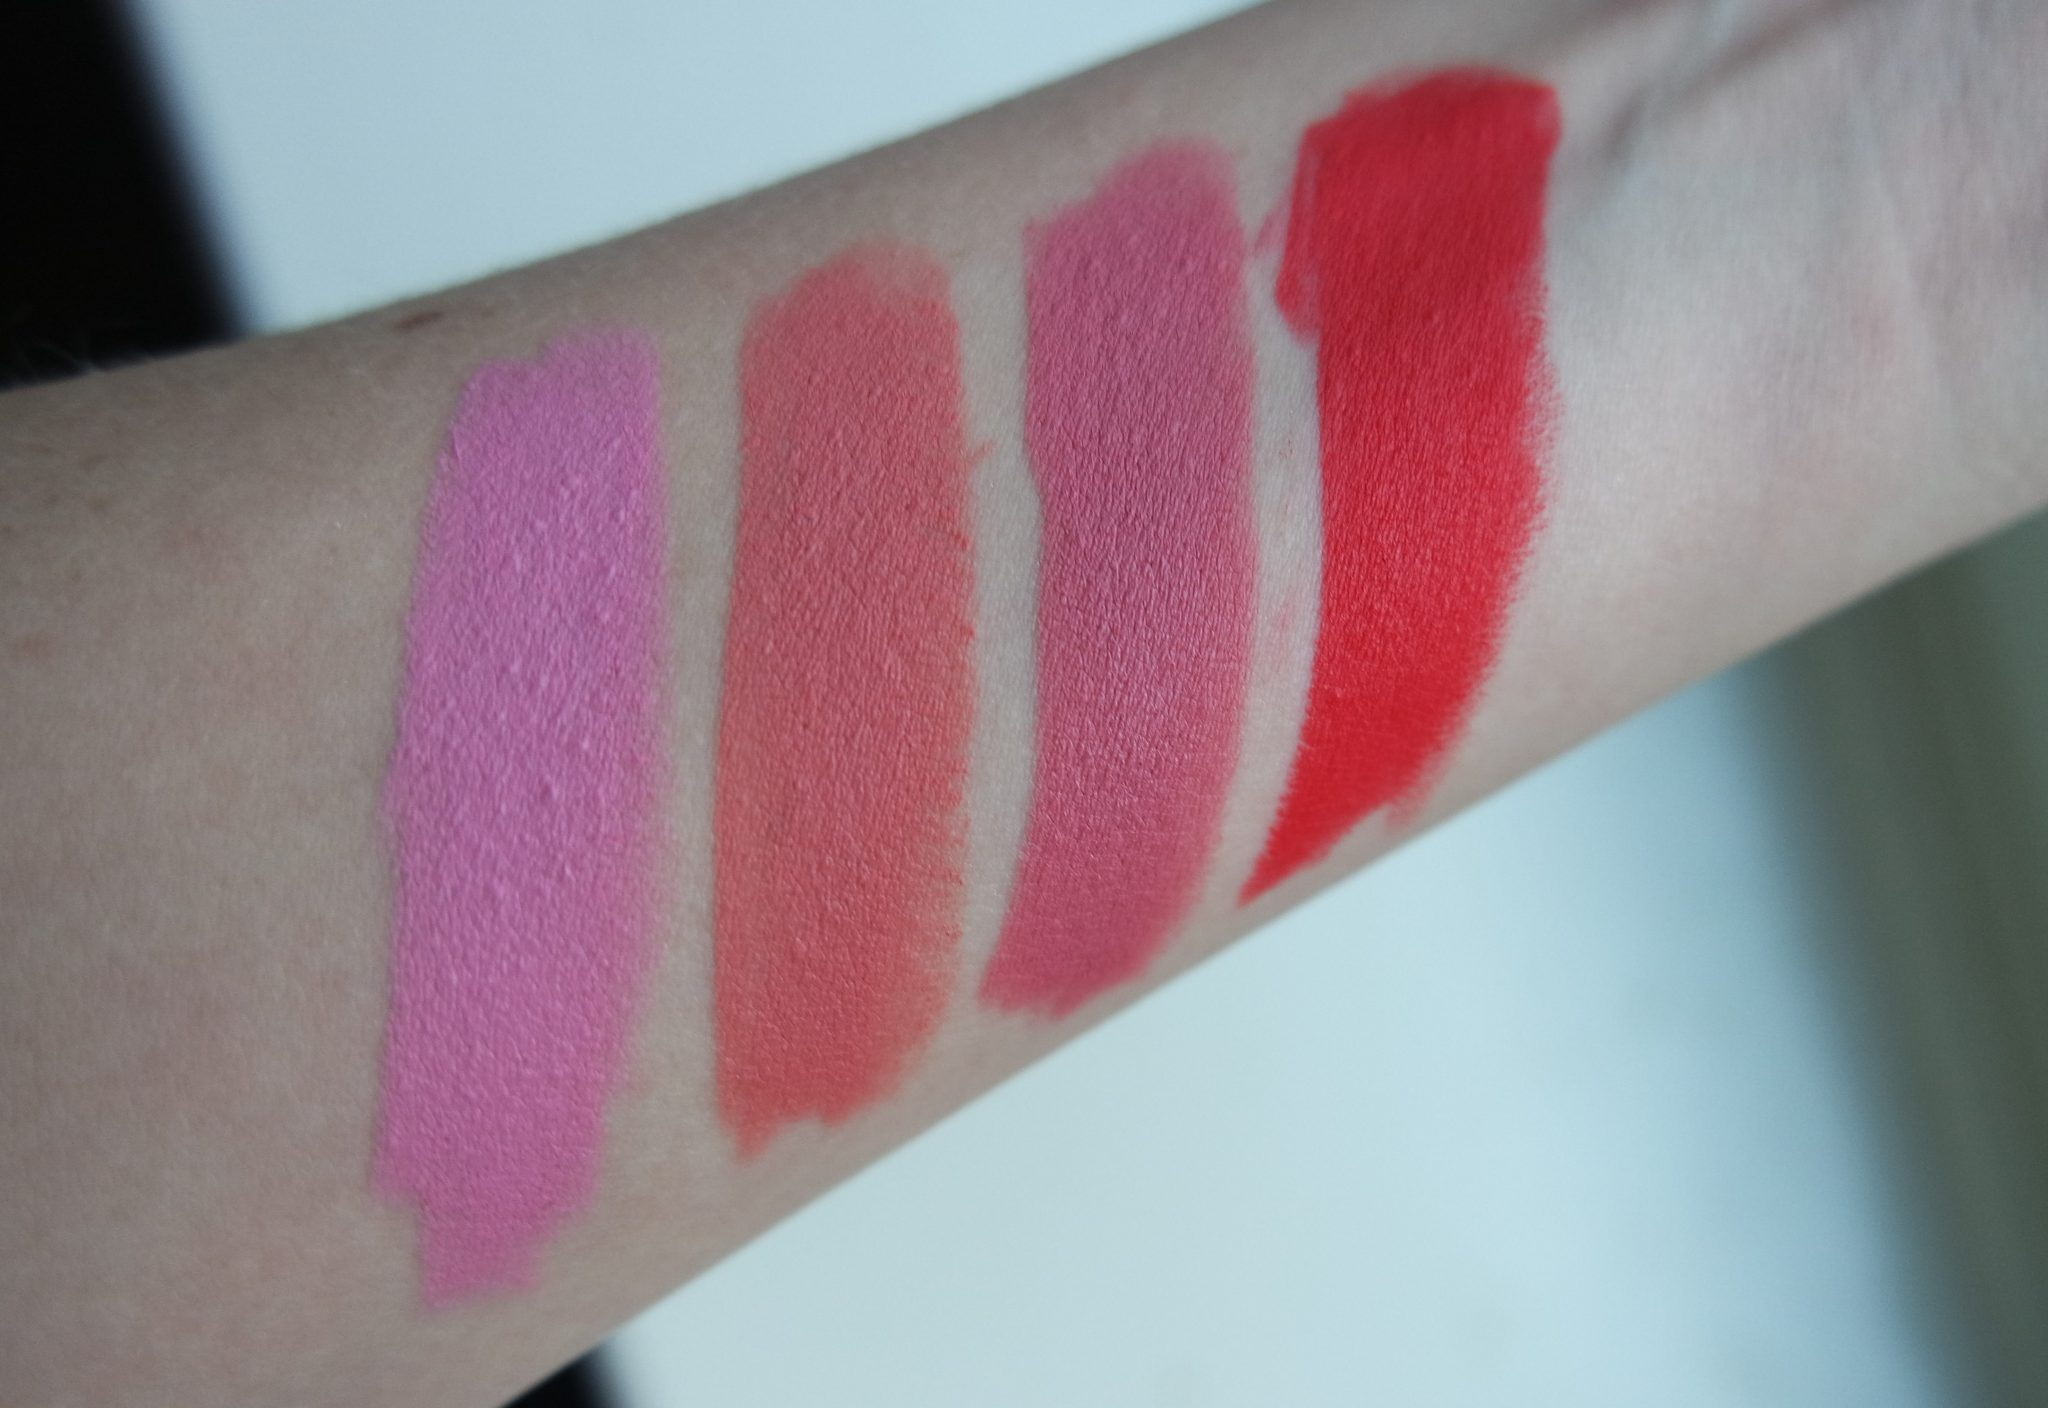 mac snowball lipstick kit review swatches party commencing please me little darling mangrove